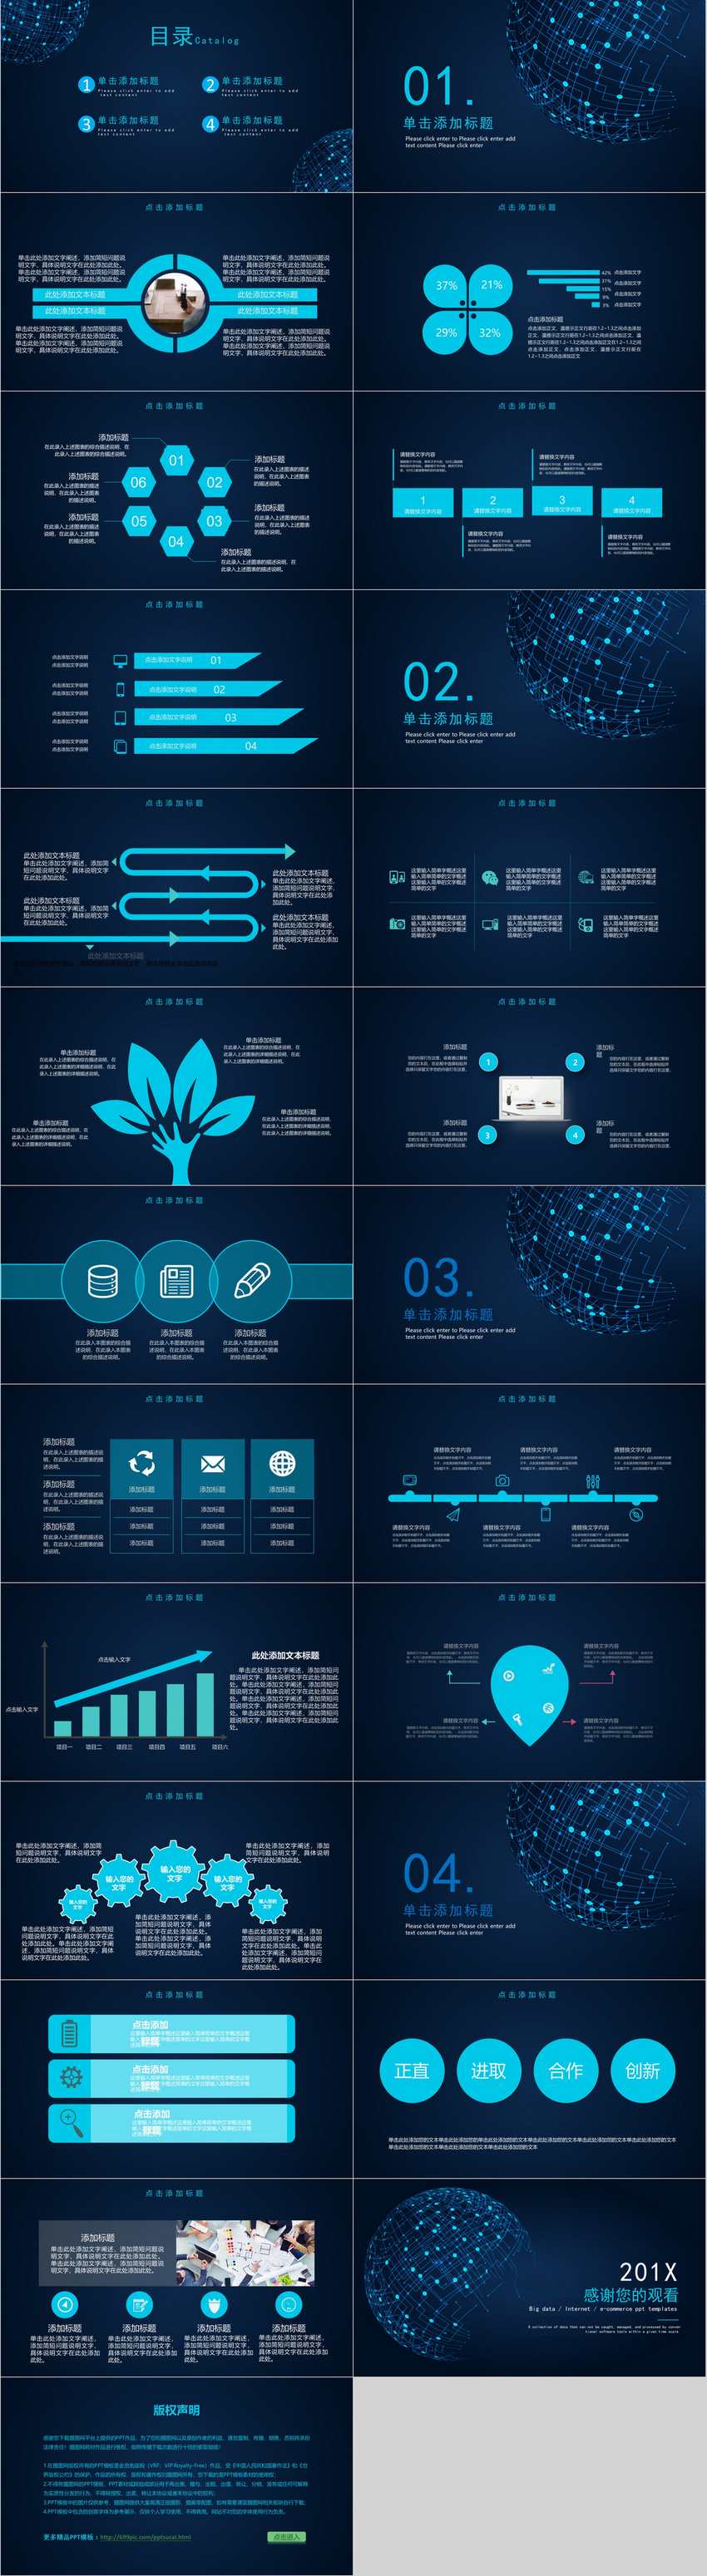 Technology Network Information Internet Large Data Ppt Template Powerpoint Templete Ppt Free Download 400168550 Lovepik Com